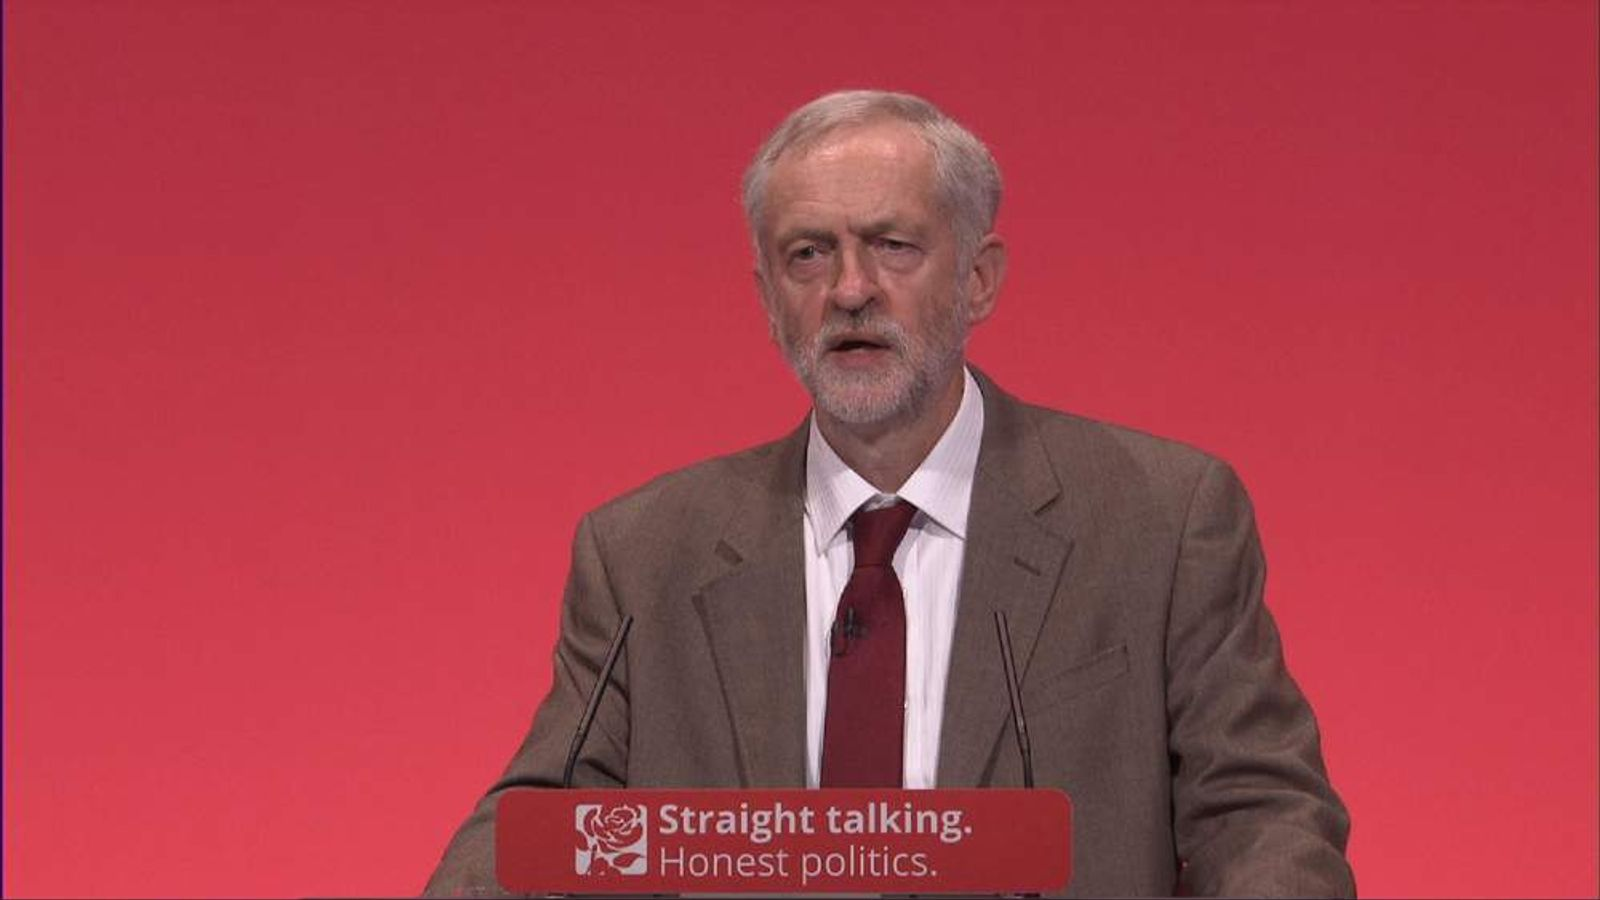 Labour leader talks about ending austerity